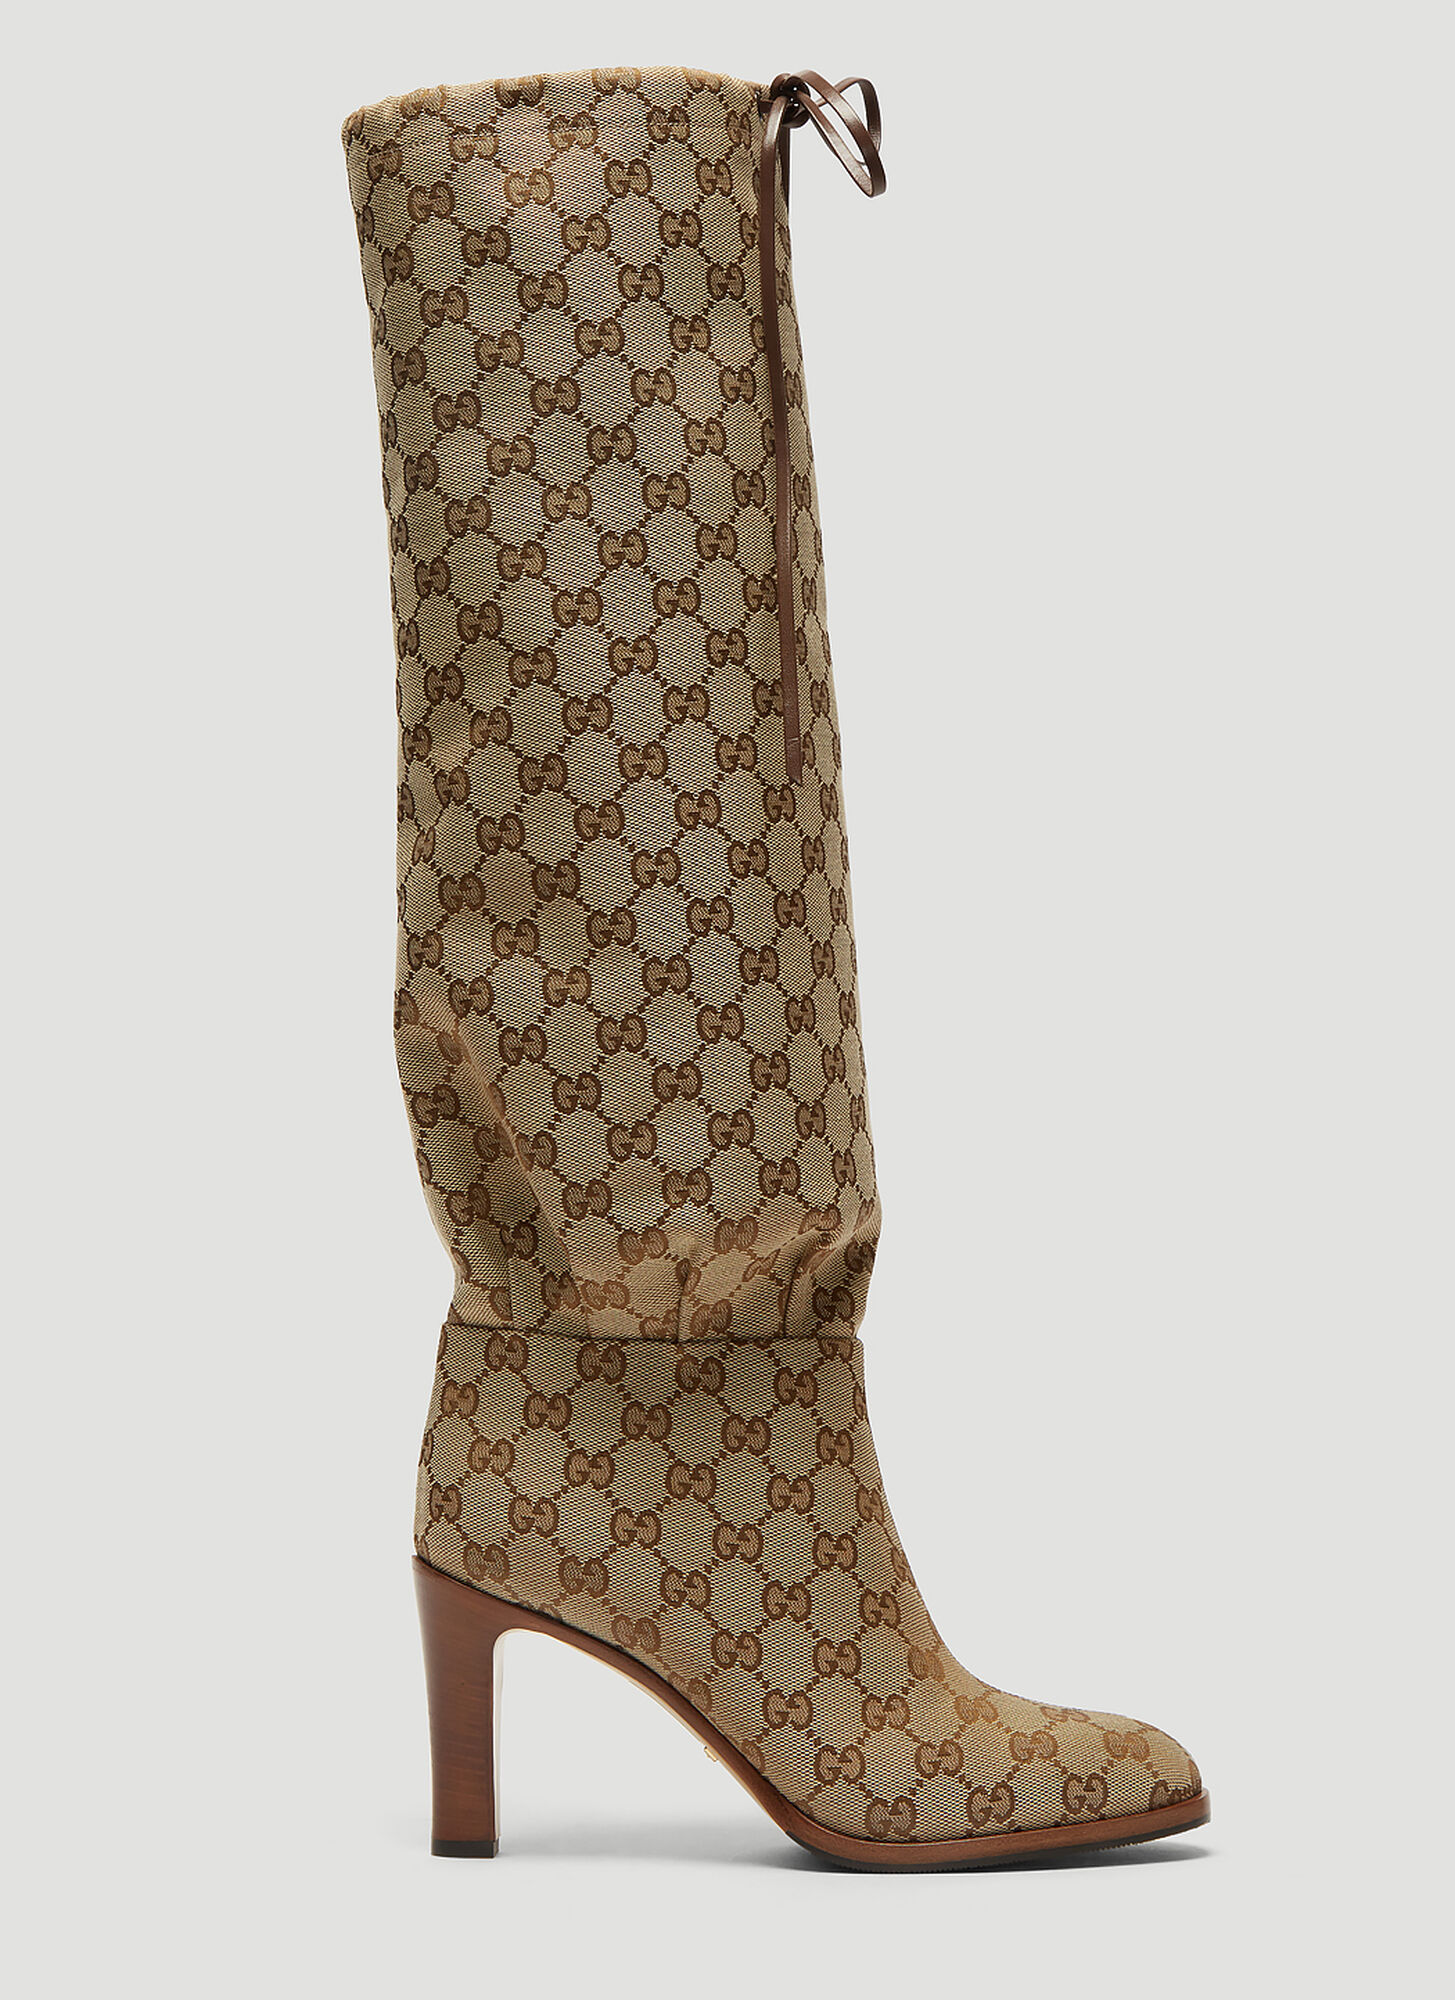 Gucci Lisa Mid Knee GG Supreme Boots in Beige